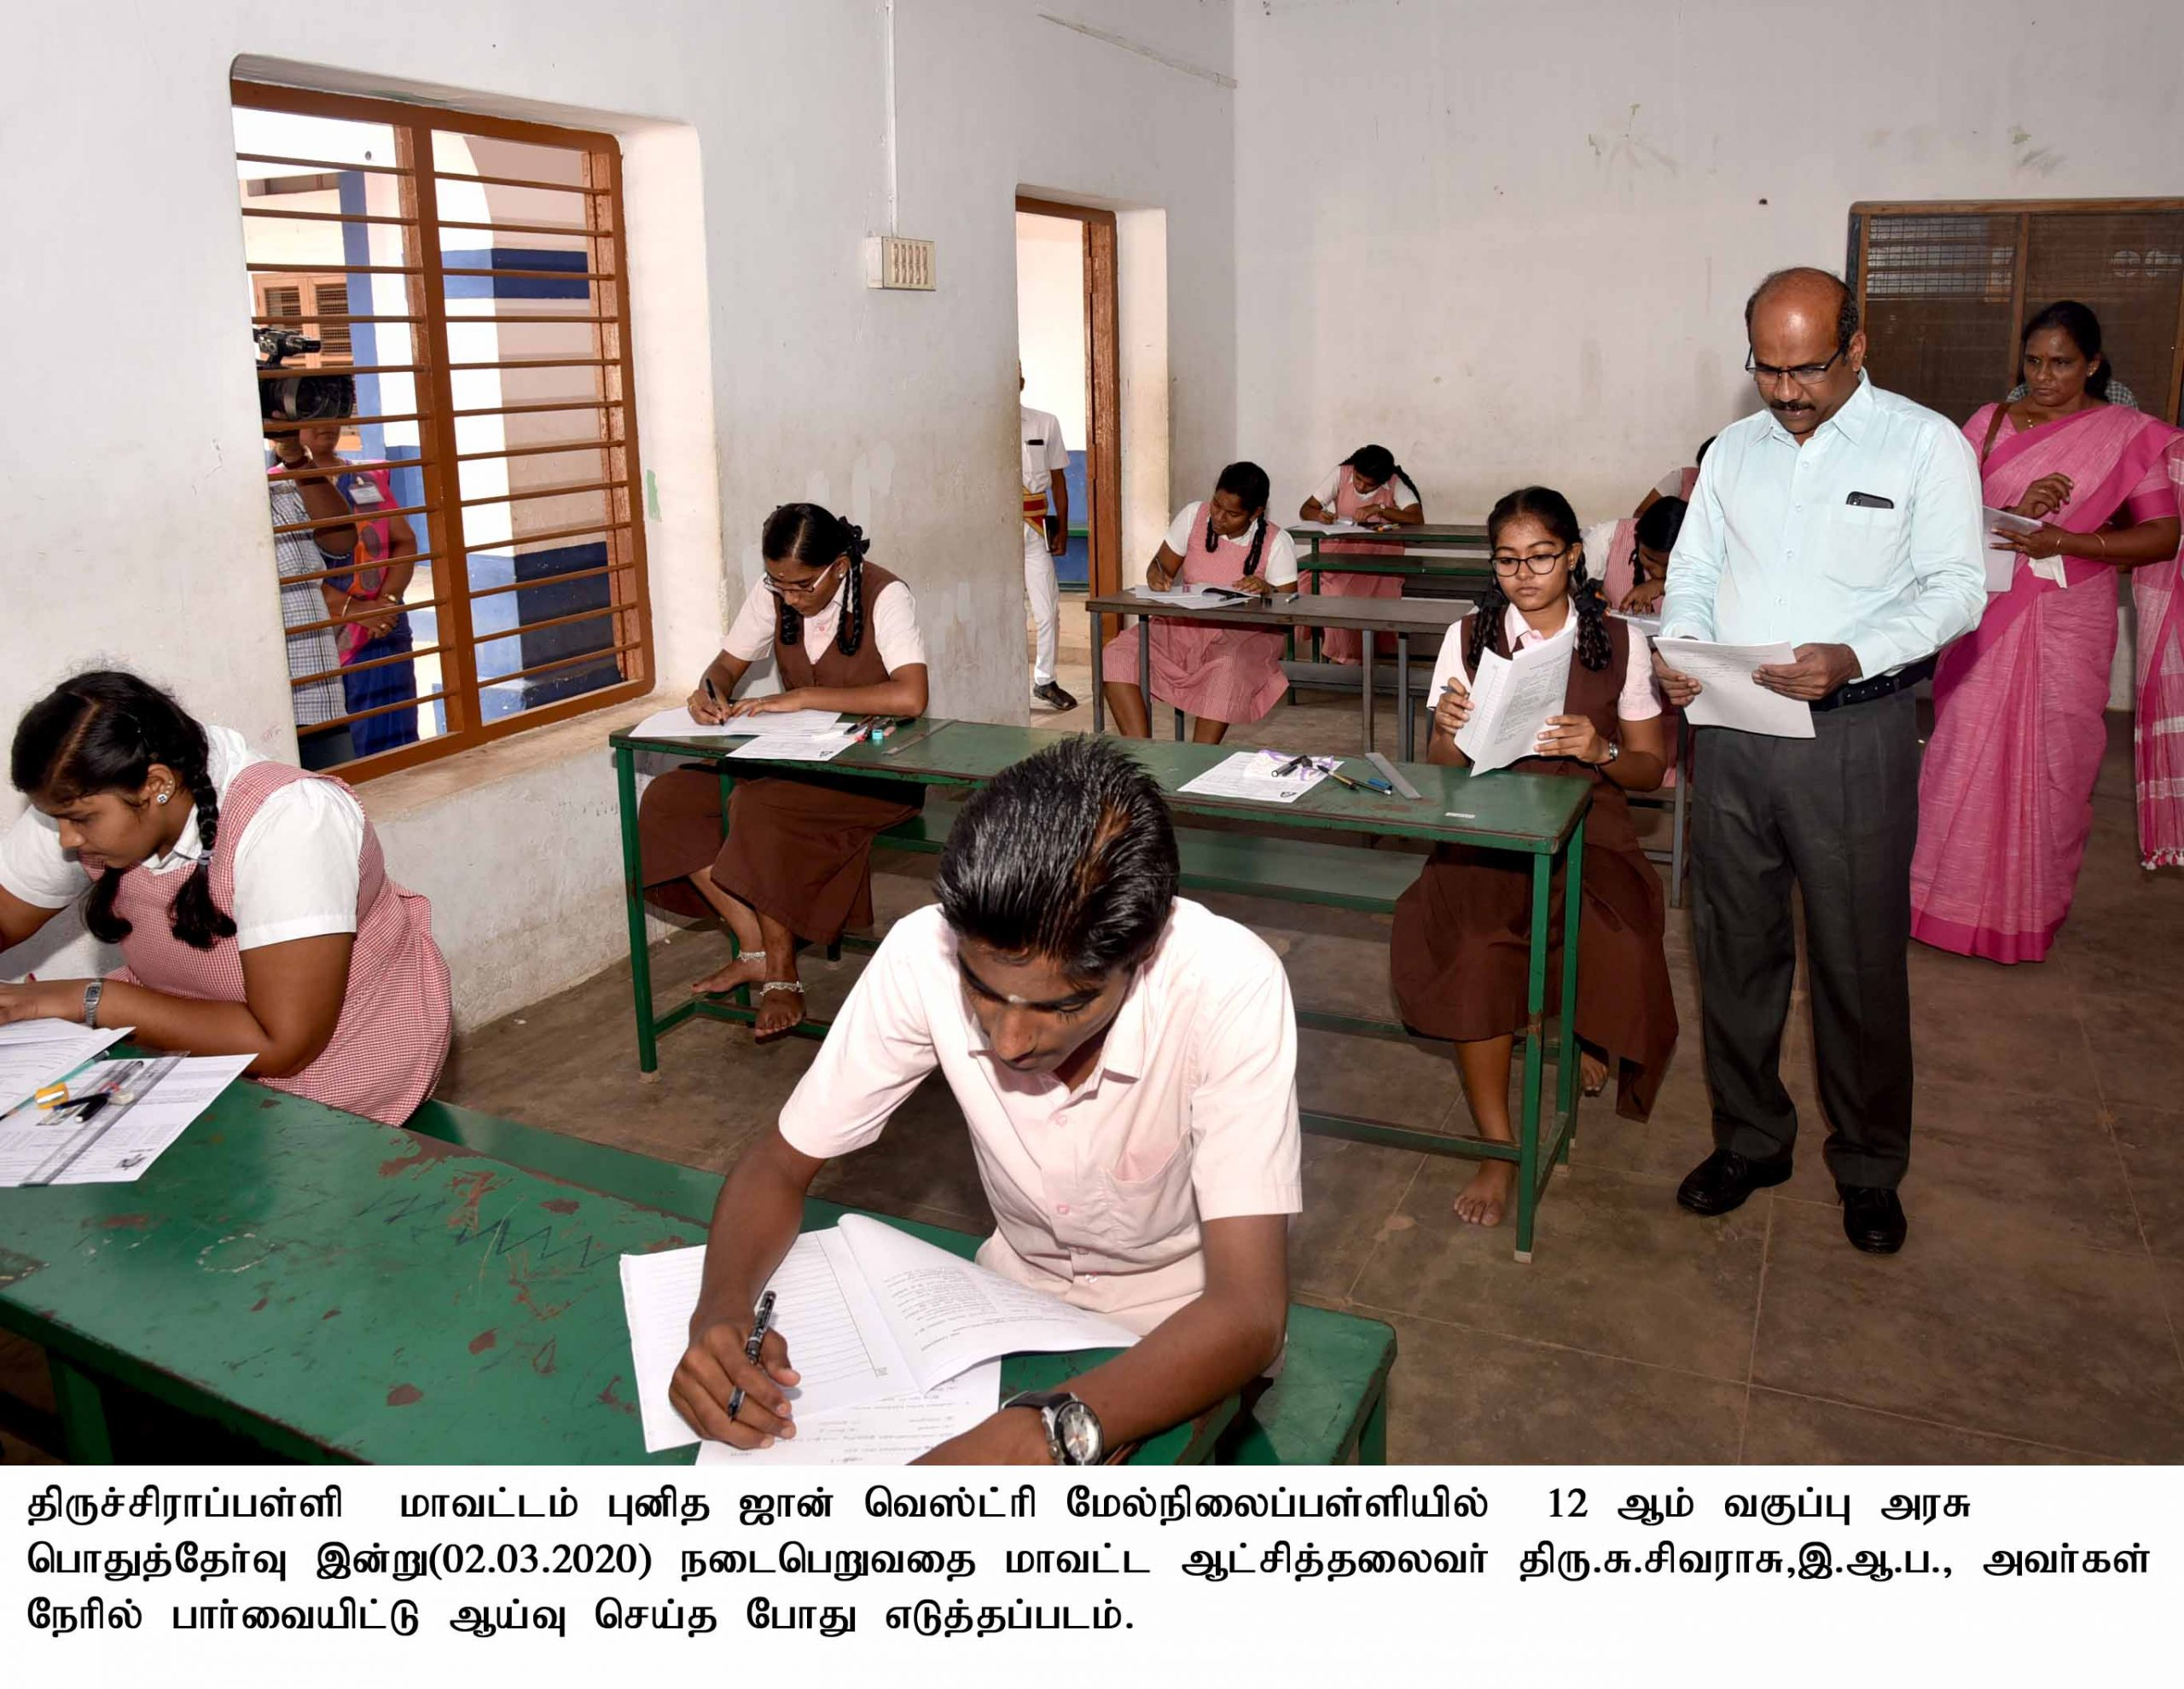 District Collector Inspected the Plus Two Board Examination Centre